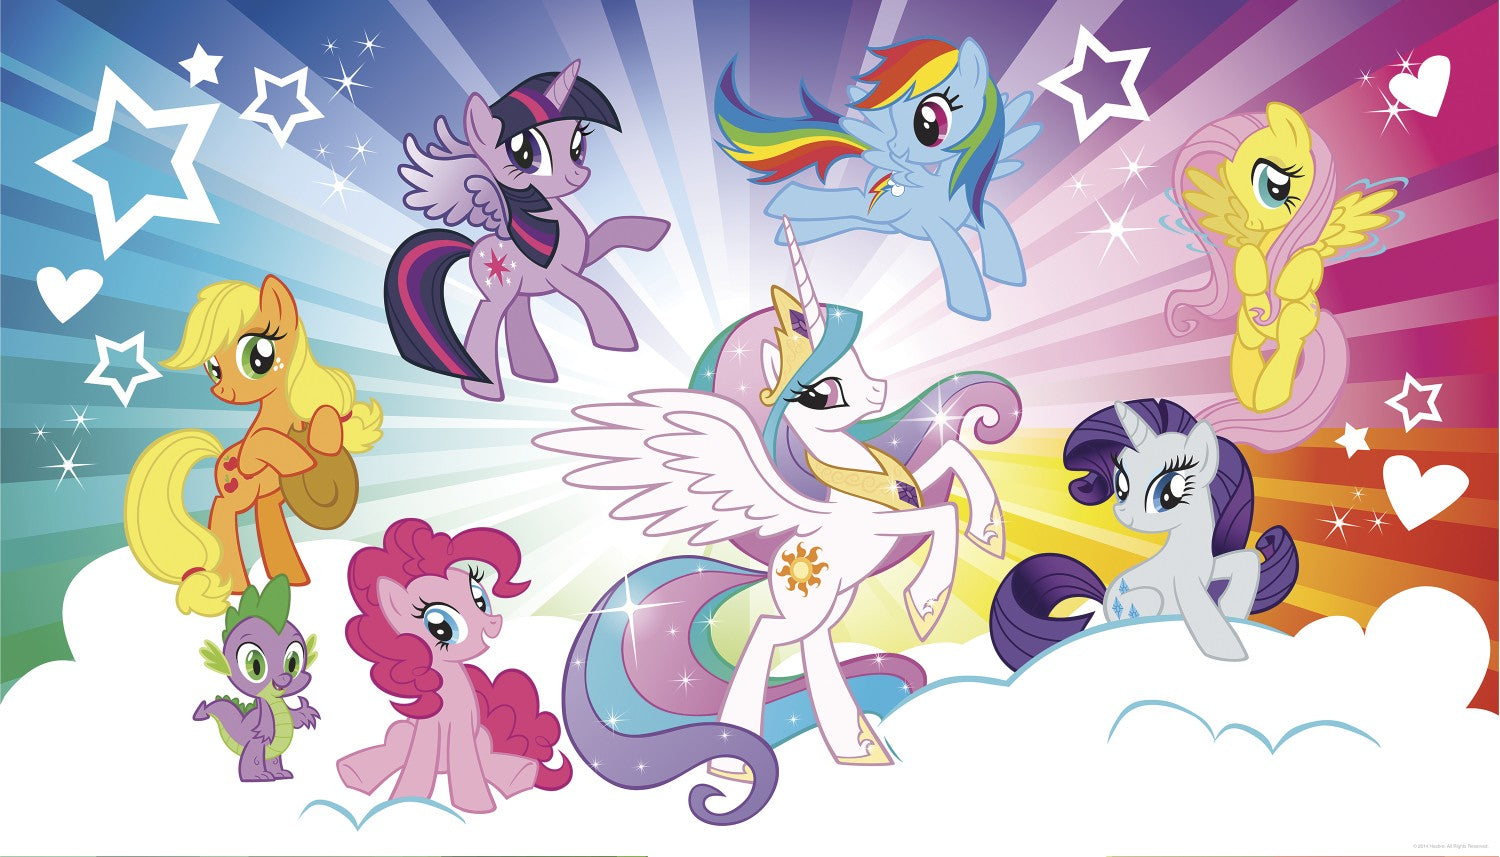 my little pony cloud burst xl wallpaper mural 10.5' x 6' | 7productgroup